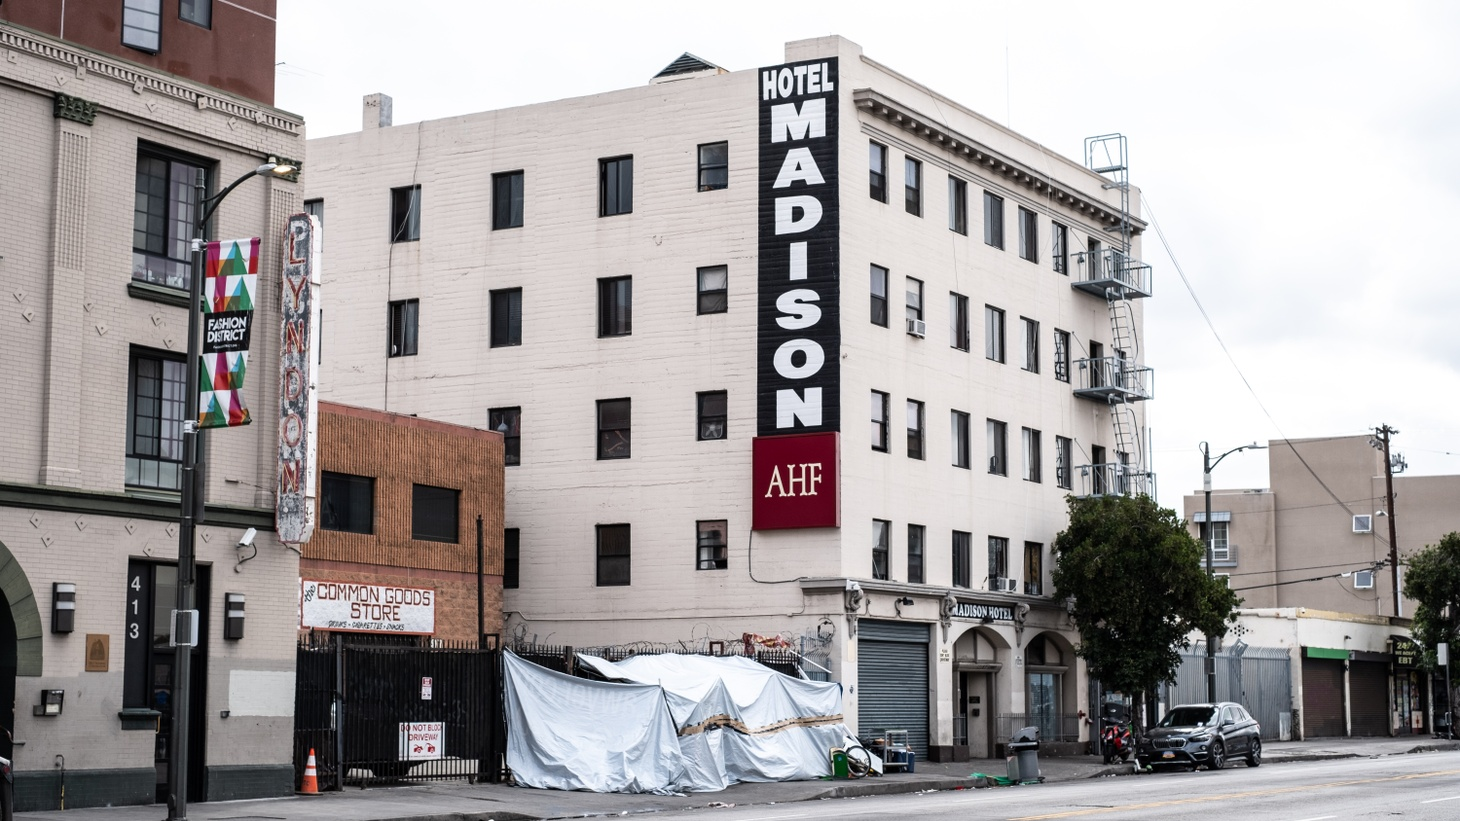 A number of residential hotels in the City of LA, such as the Madison Hotel in downtown, offer shelter for people who would otherwise be homeless.